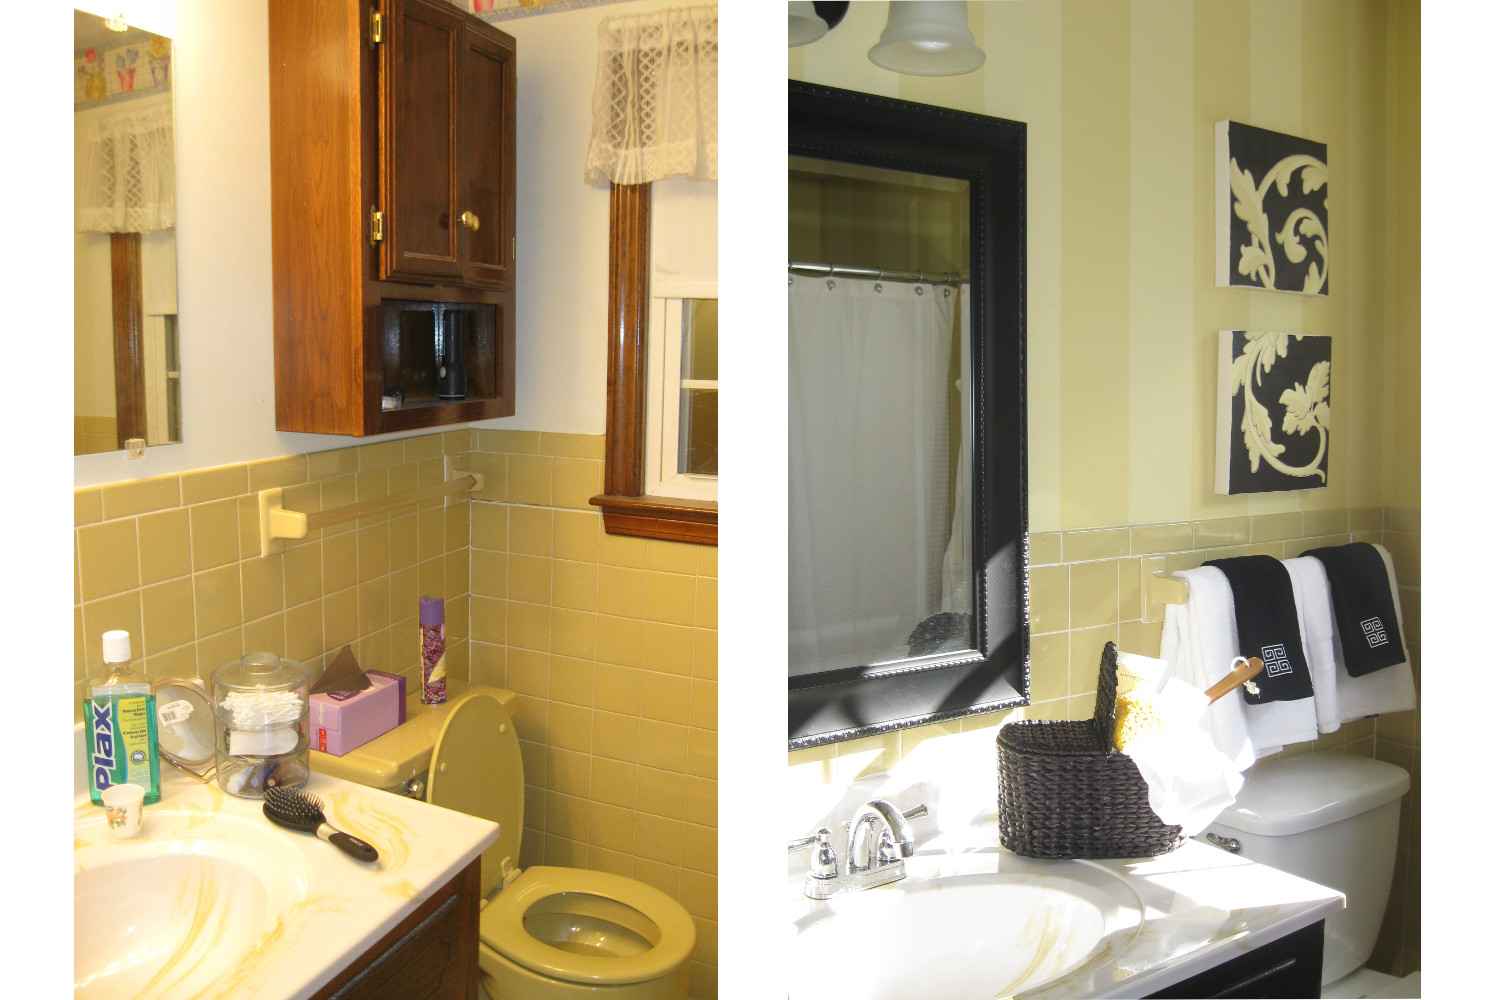 jrl-interiors-staging-townhouse-bath-before-and-after.jpg